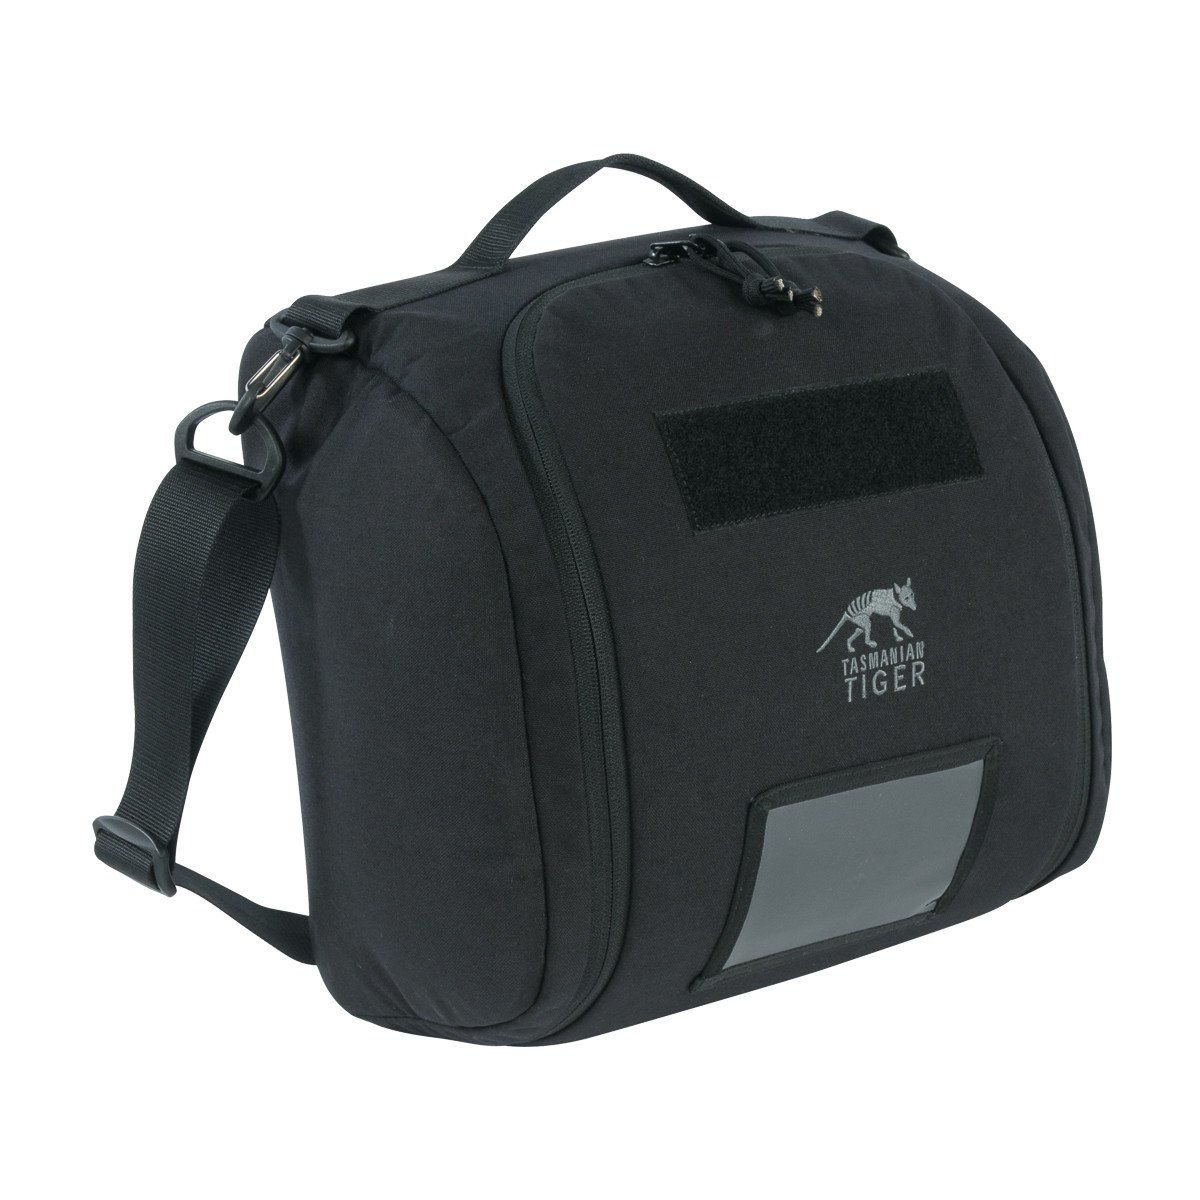 Сумка для шлема Tasmanian Tiger Tactical Helmet Bag Black (TT 7748.040)